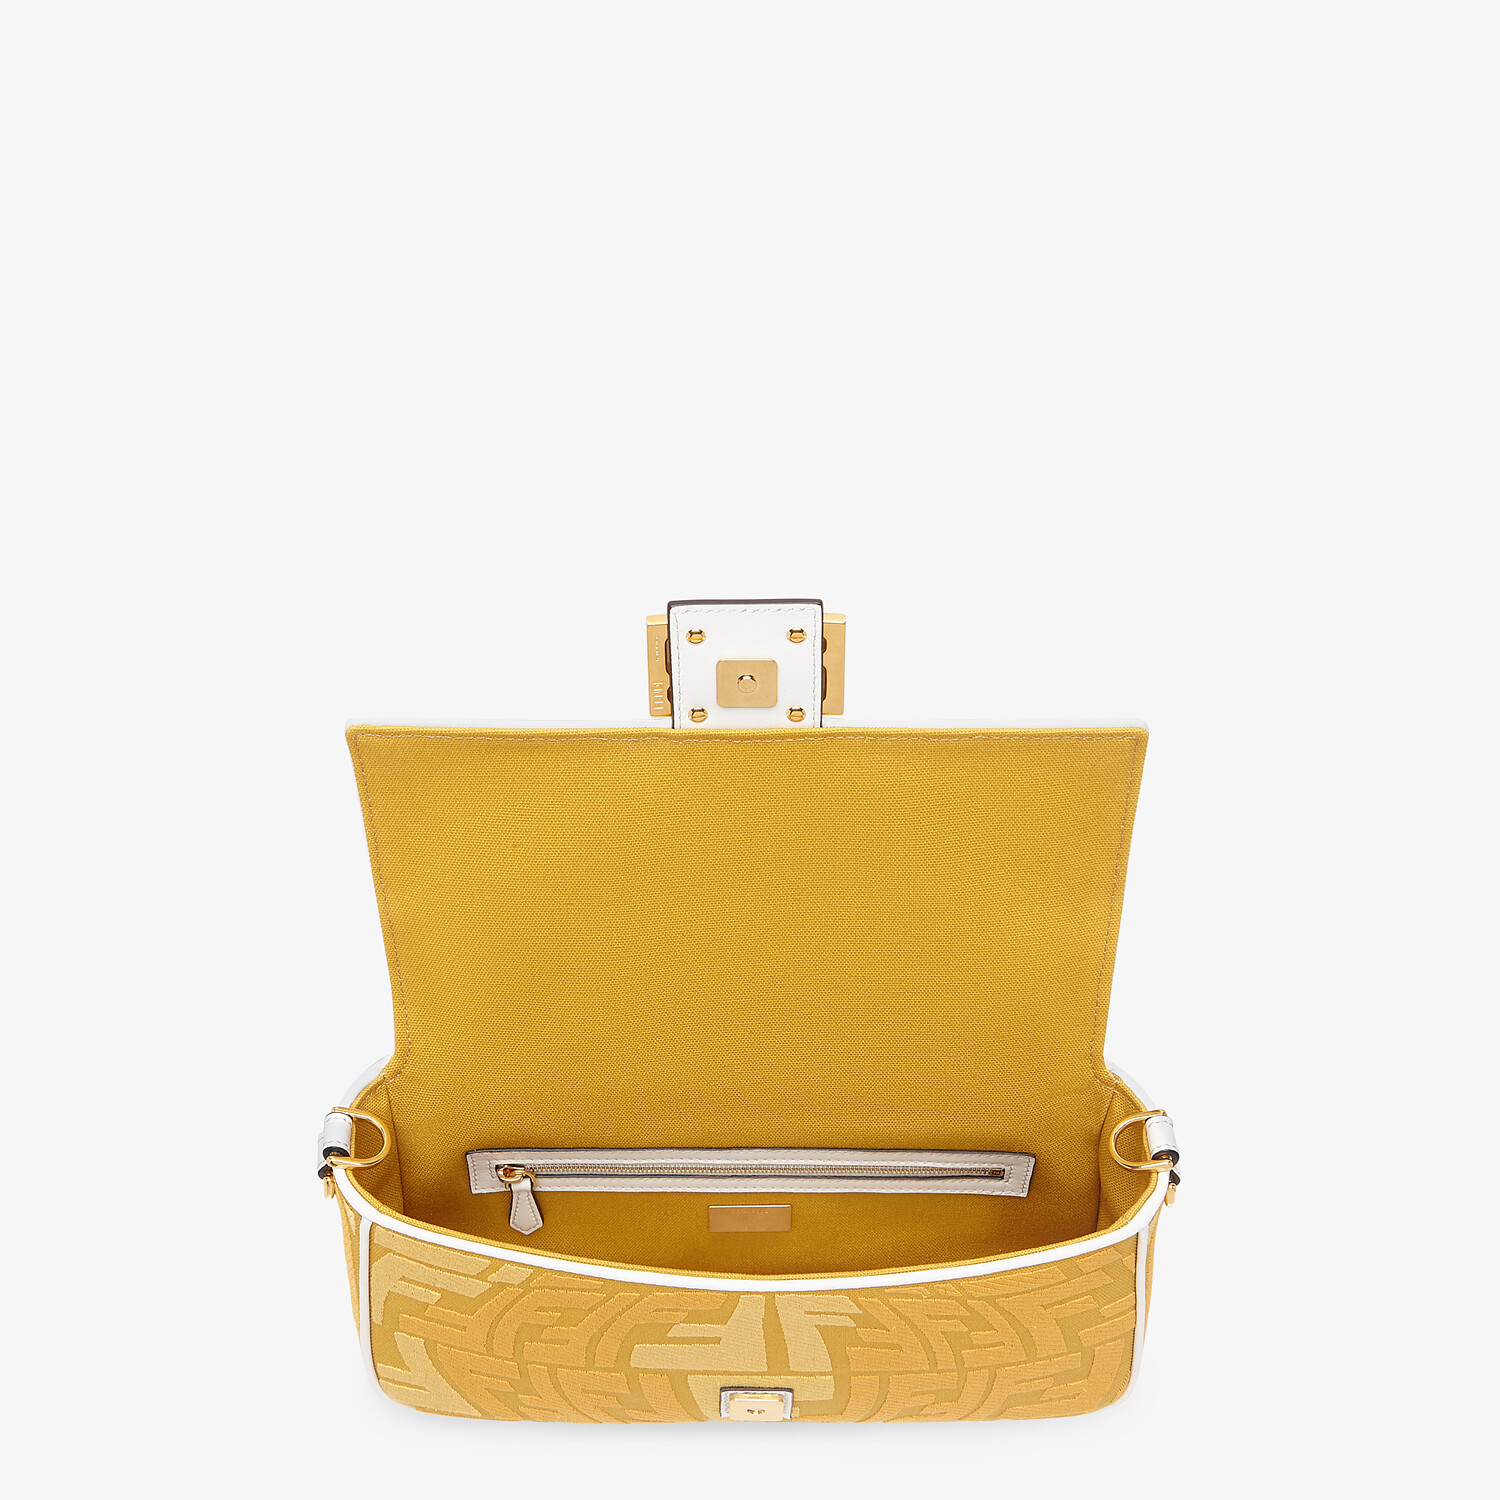 FENDI BAGUETTE - Embroidered yellow canvas bag - view 4 detail